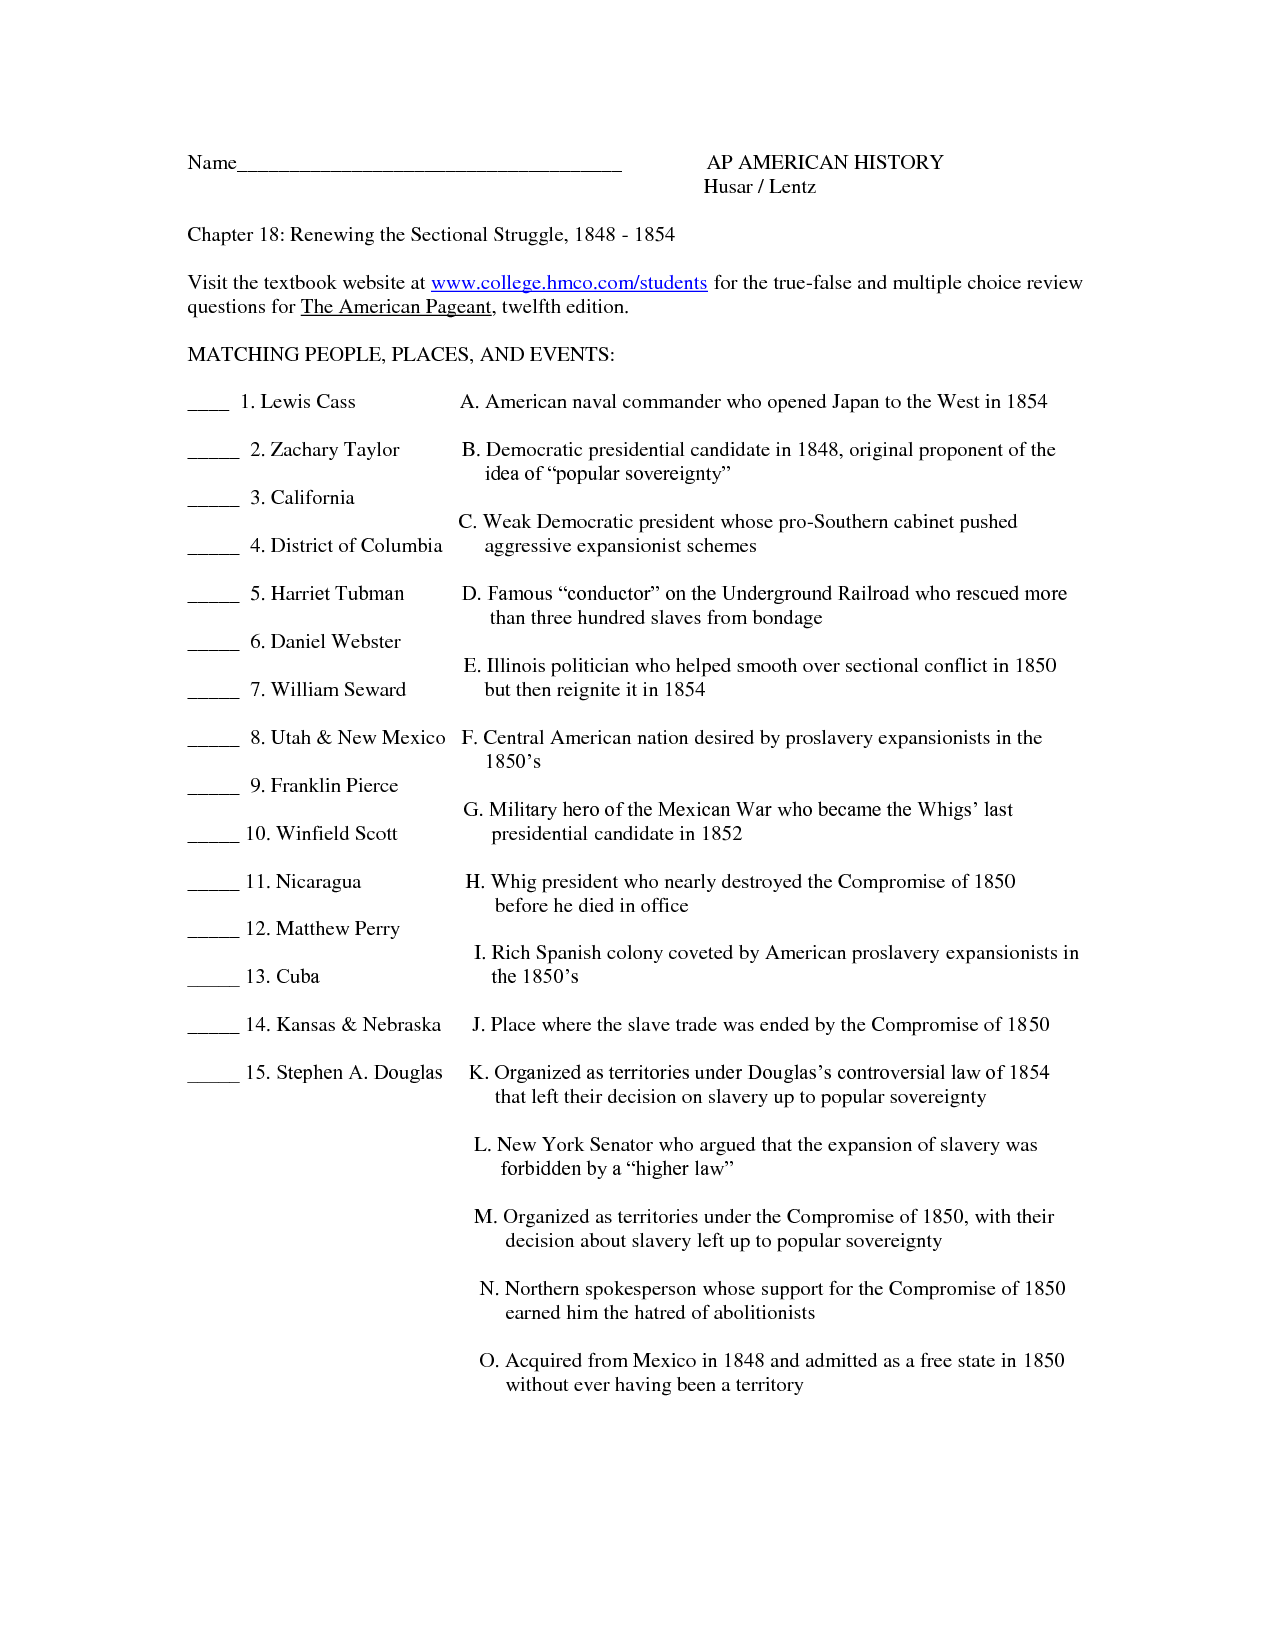 Viewpoints Chapter 18 Worksheet